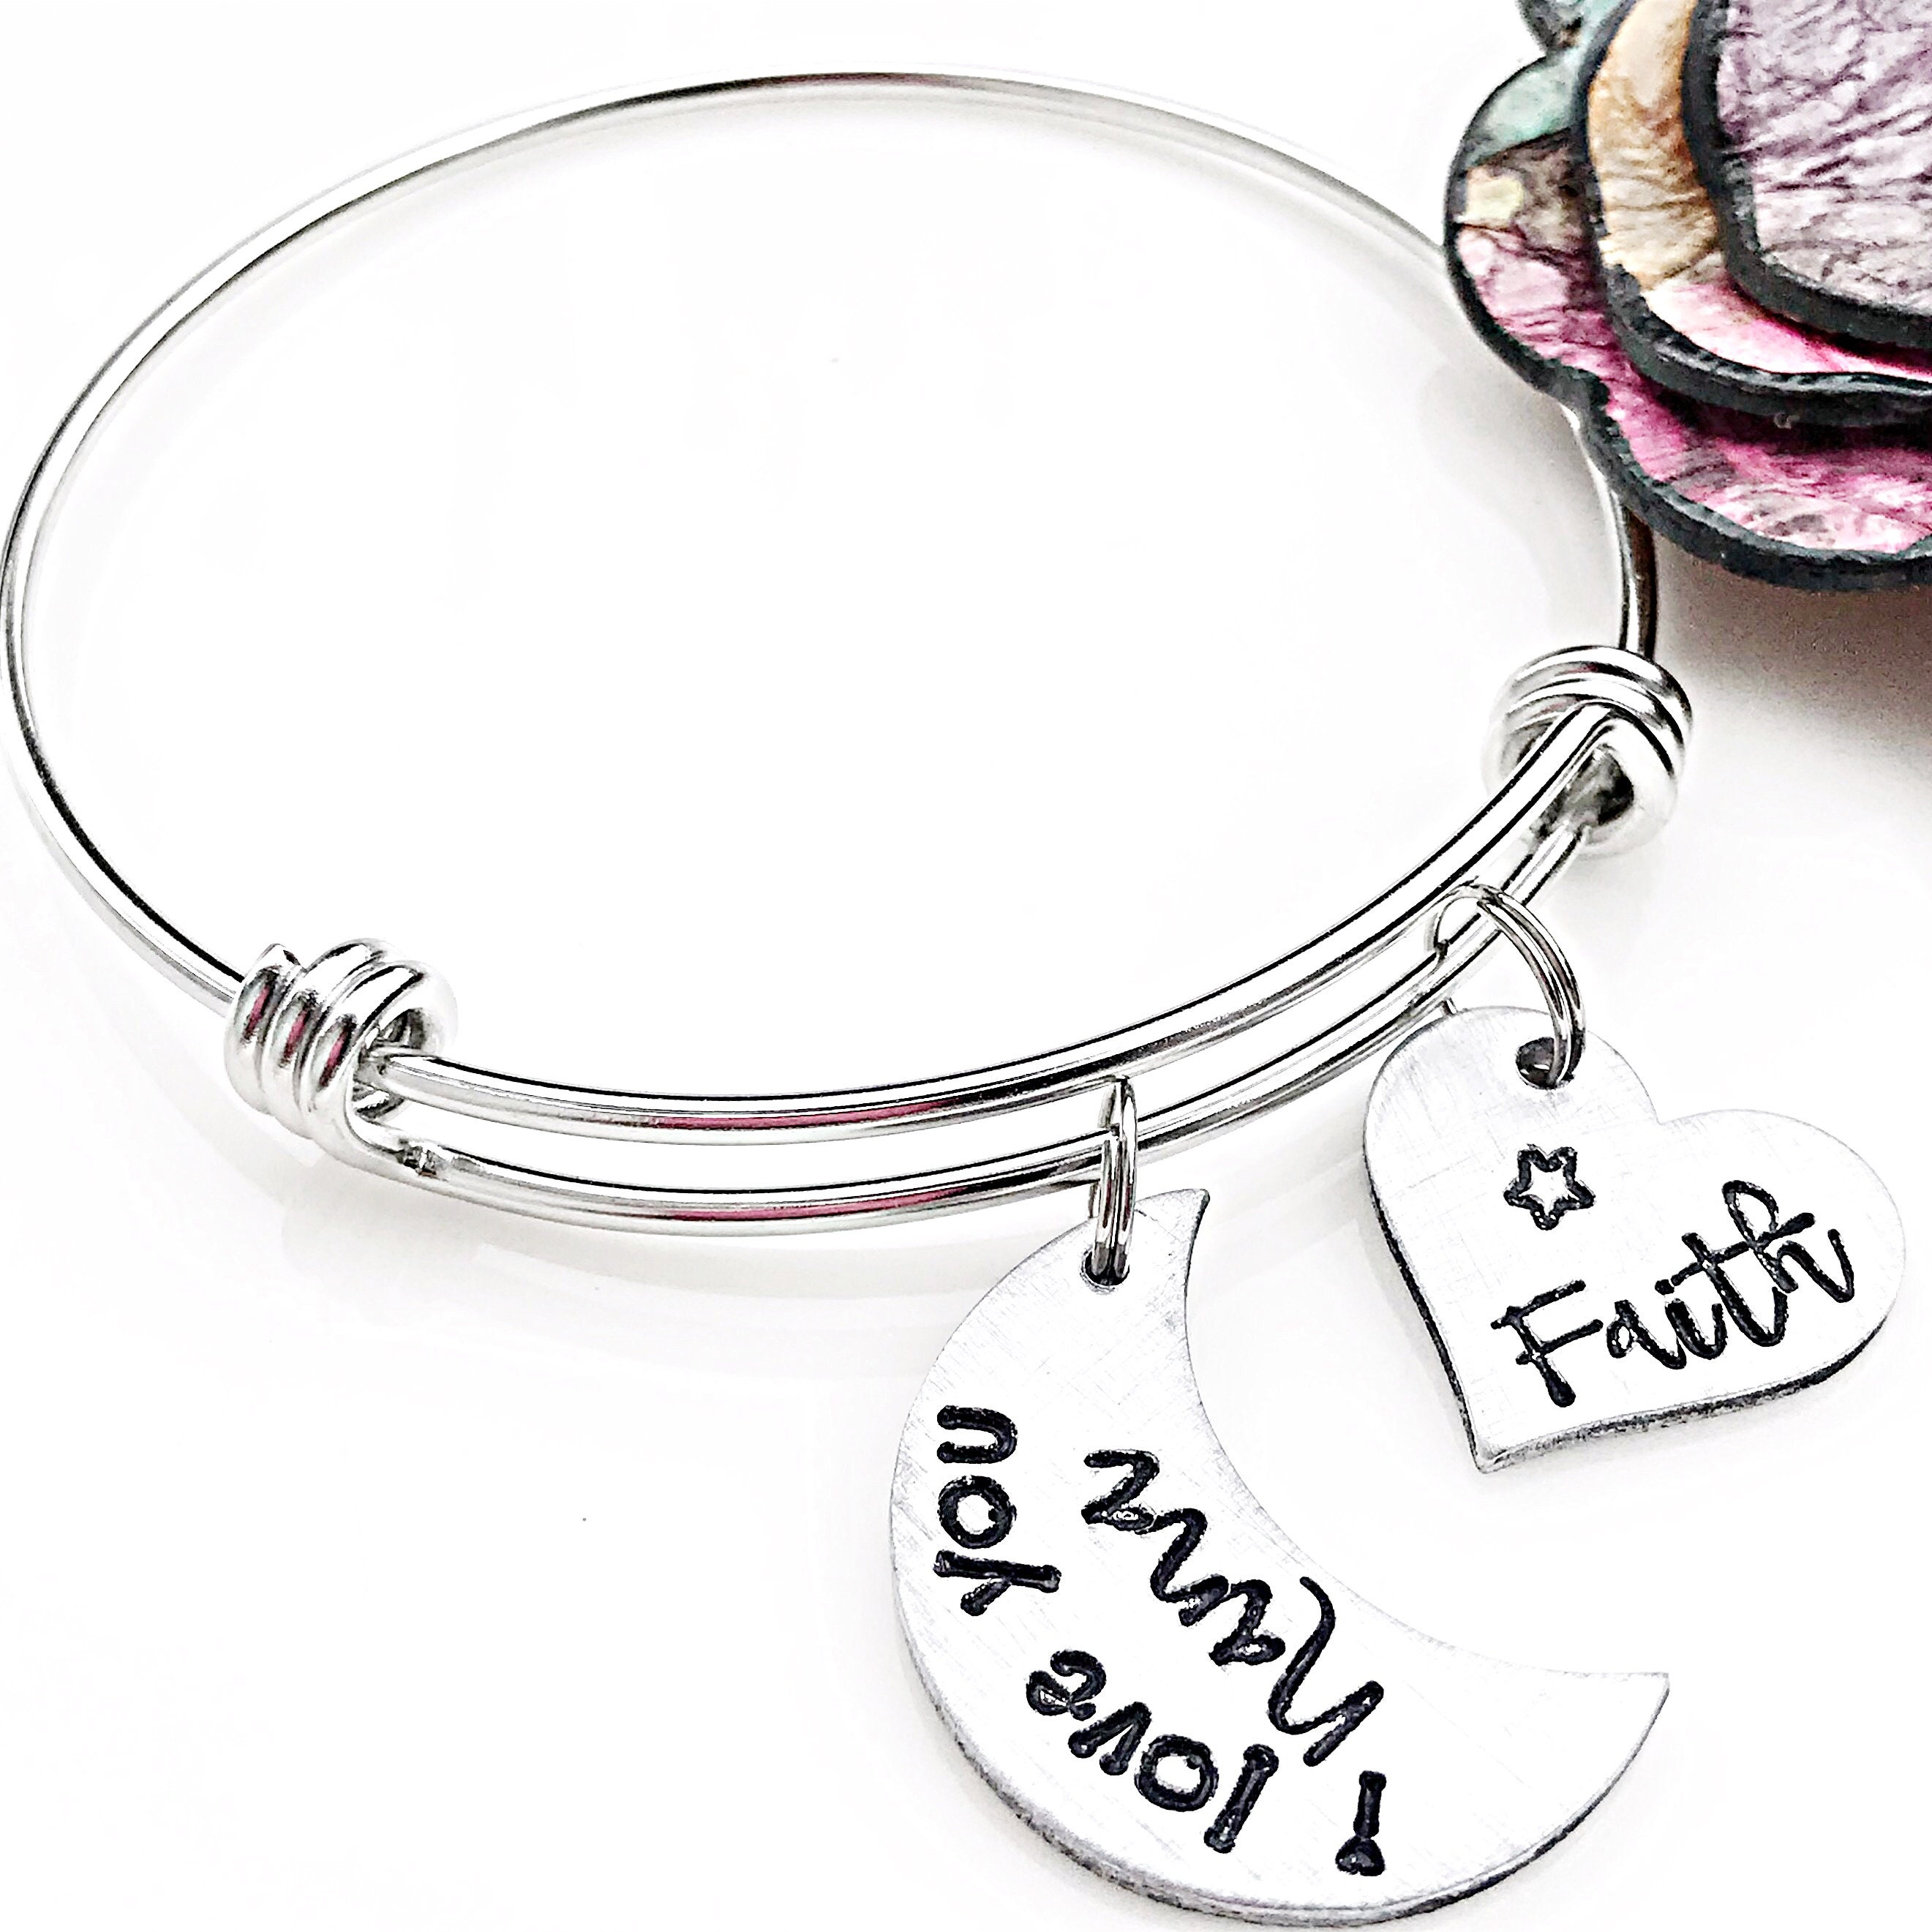 grandchild steel personalized bakers charm bracelet stainless pin